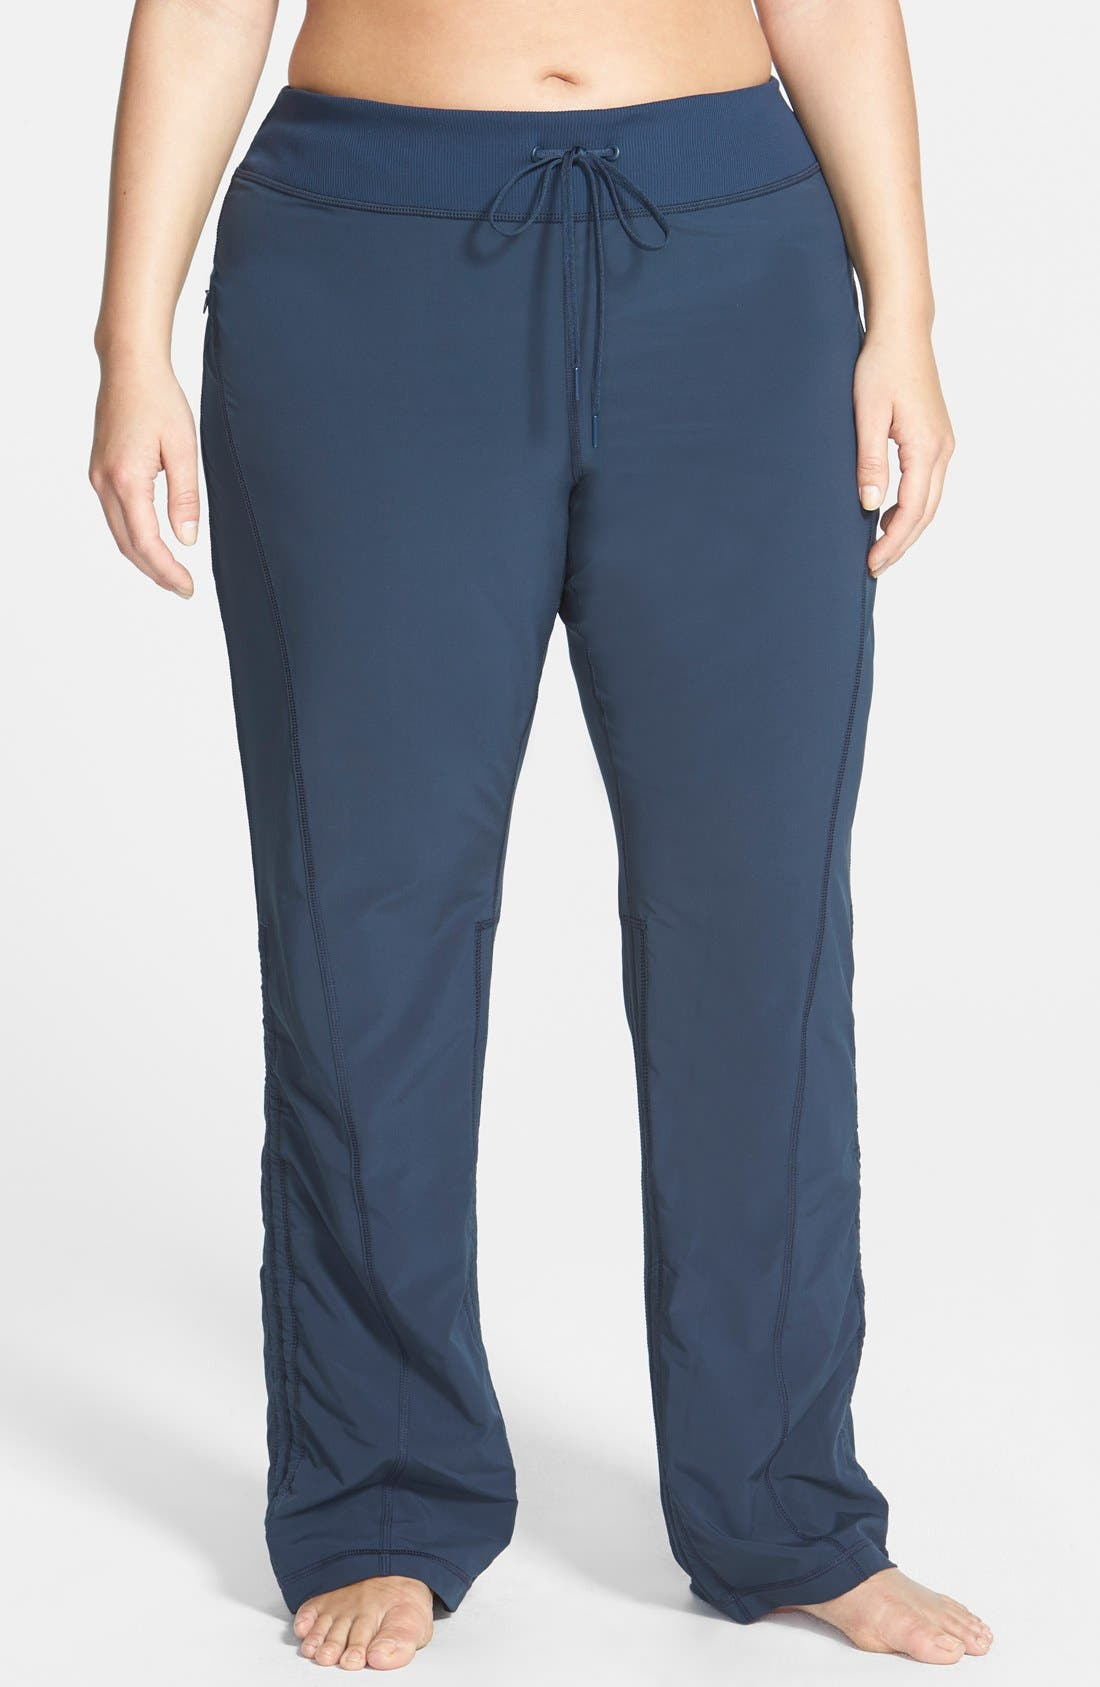 Alternate Image 1 Selected - Zella 'Work It' Pants (Plus Size)